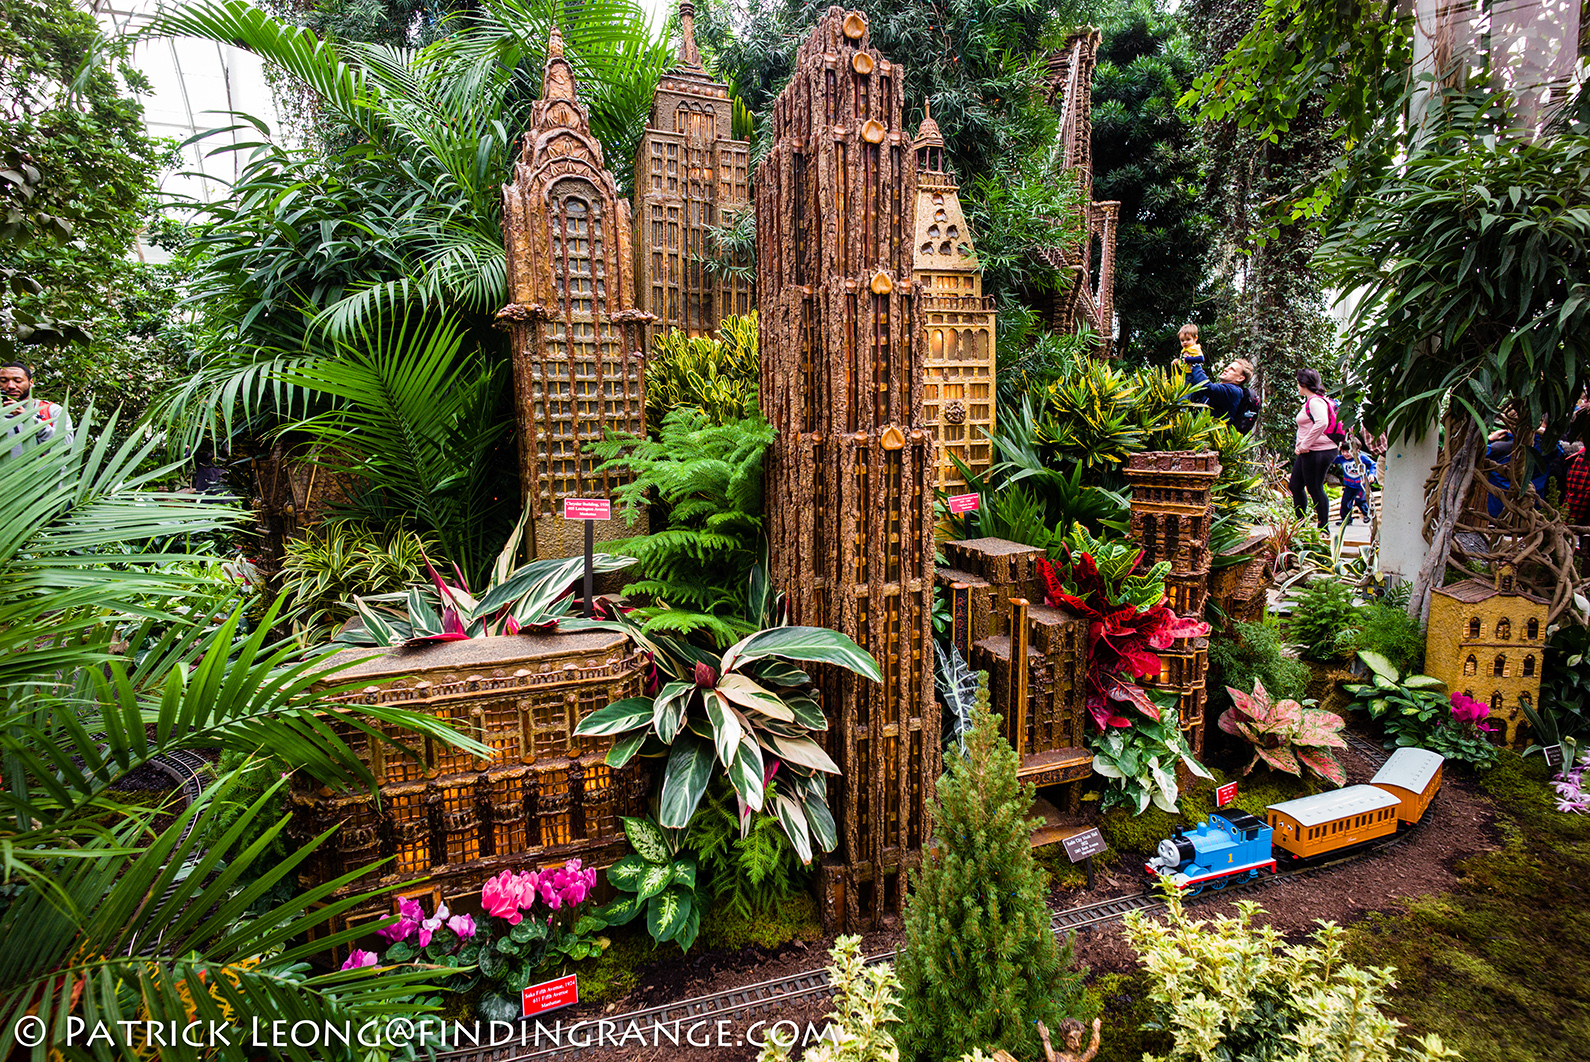 holiday train show new york botanical garden leica - Bronx Botanical Garden Train Show